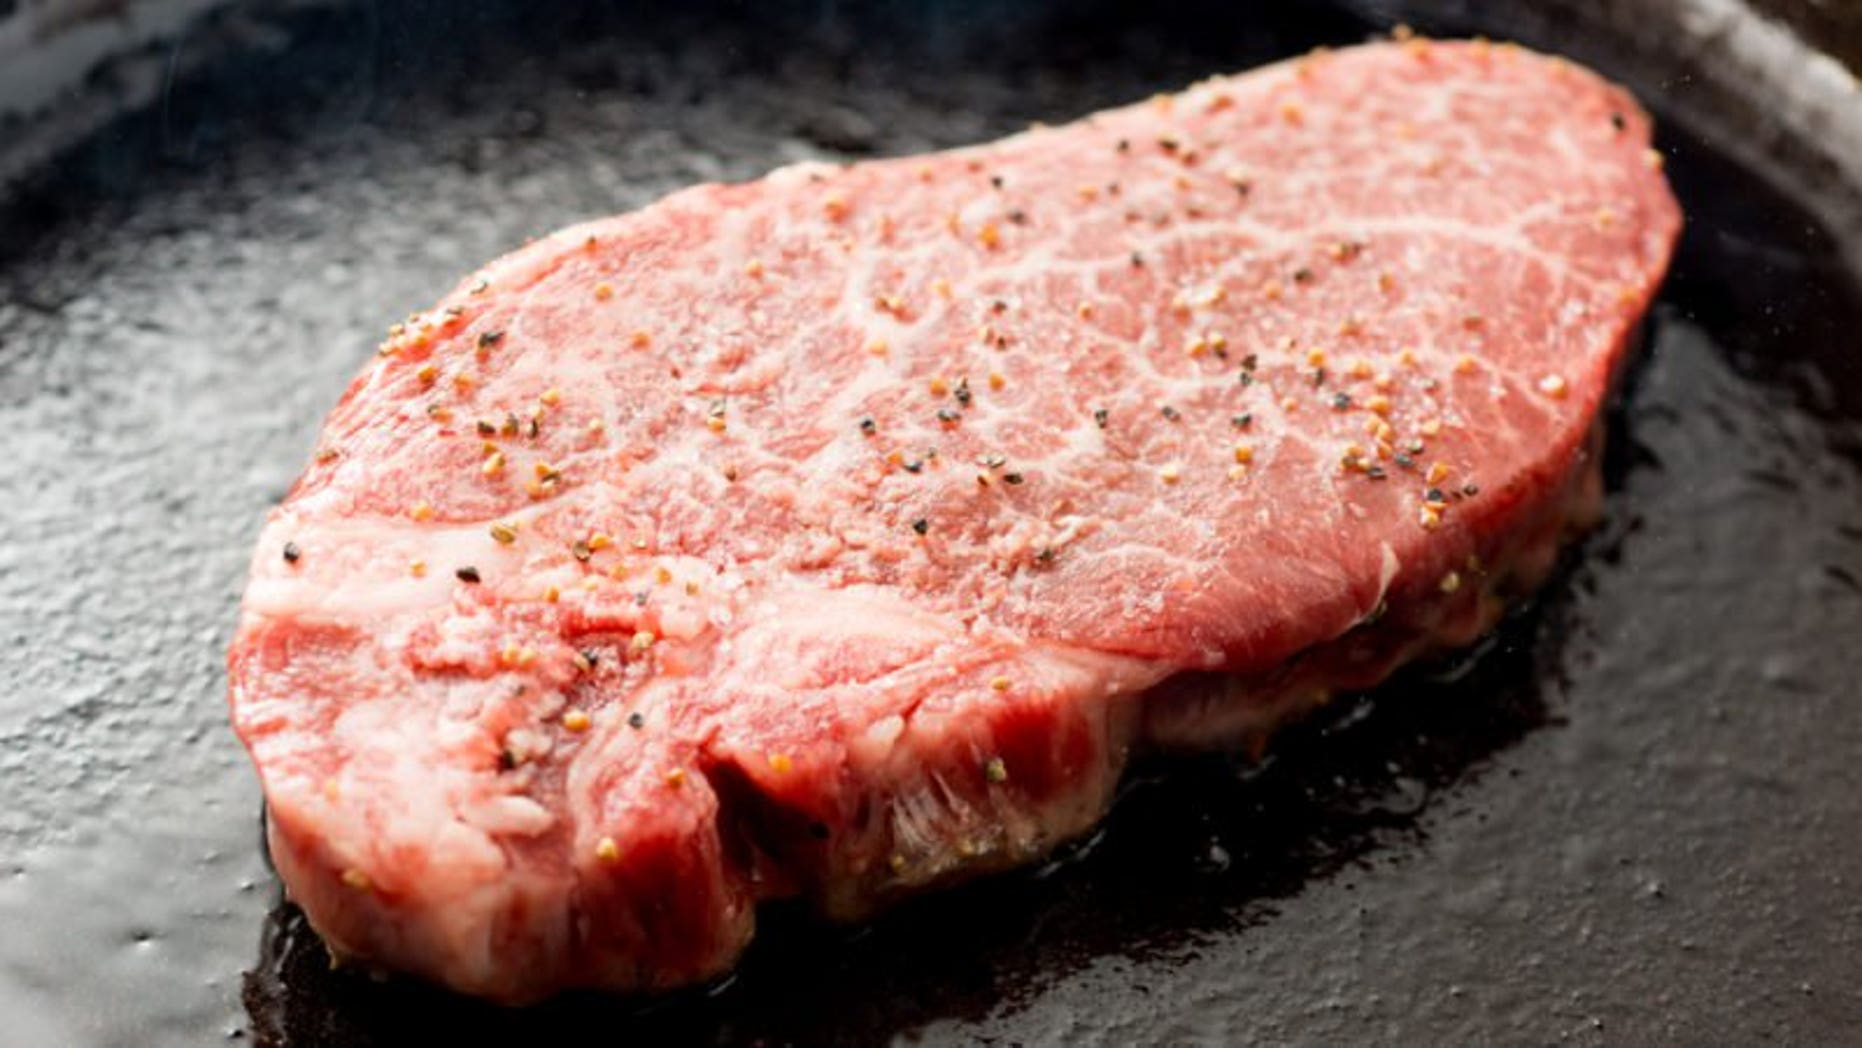 How to cook steak in oven cast iron skillet